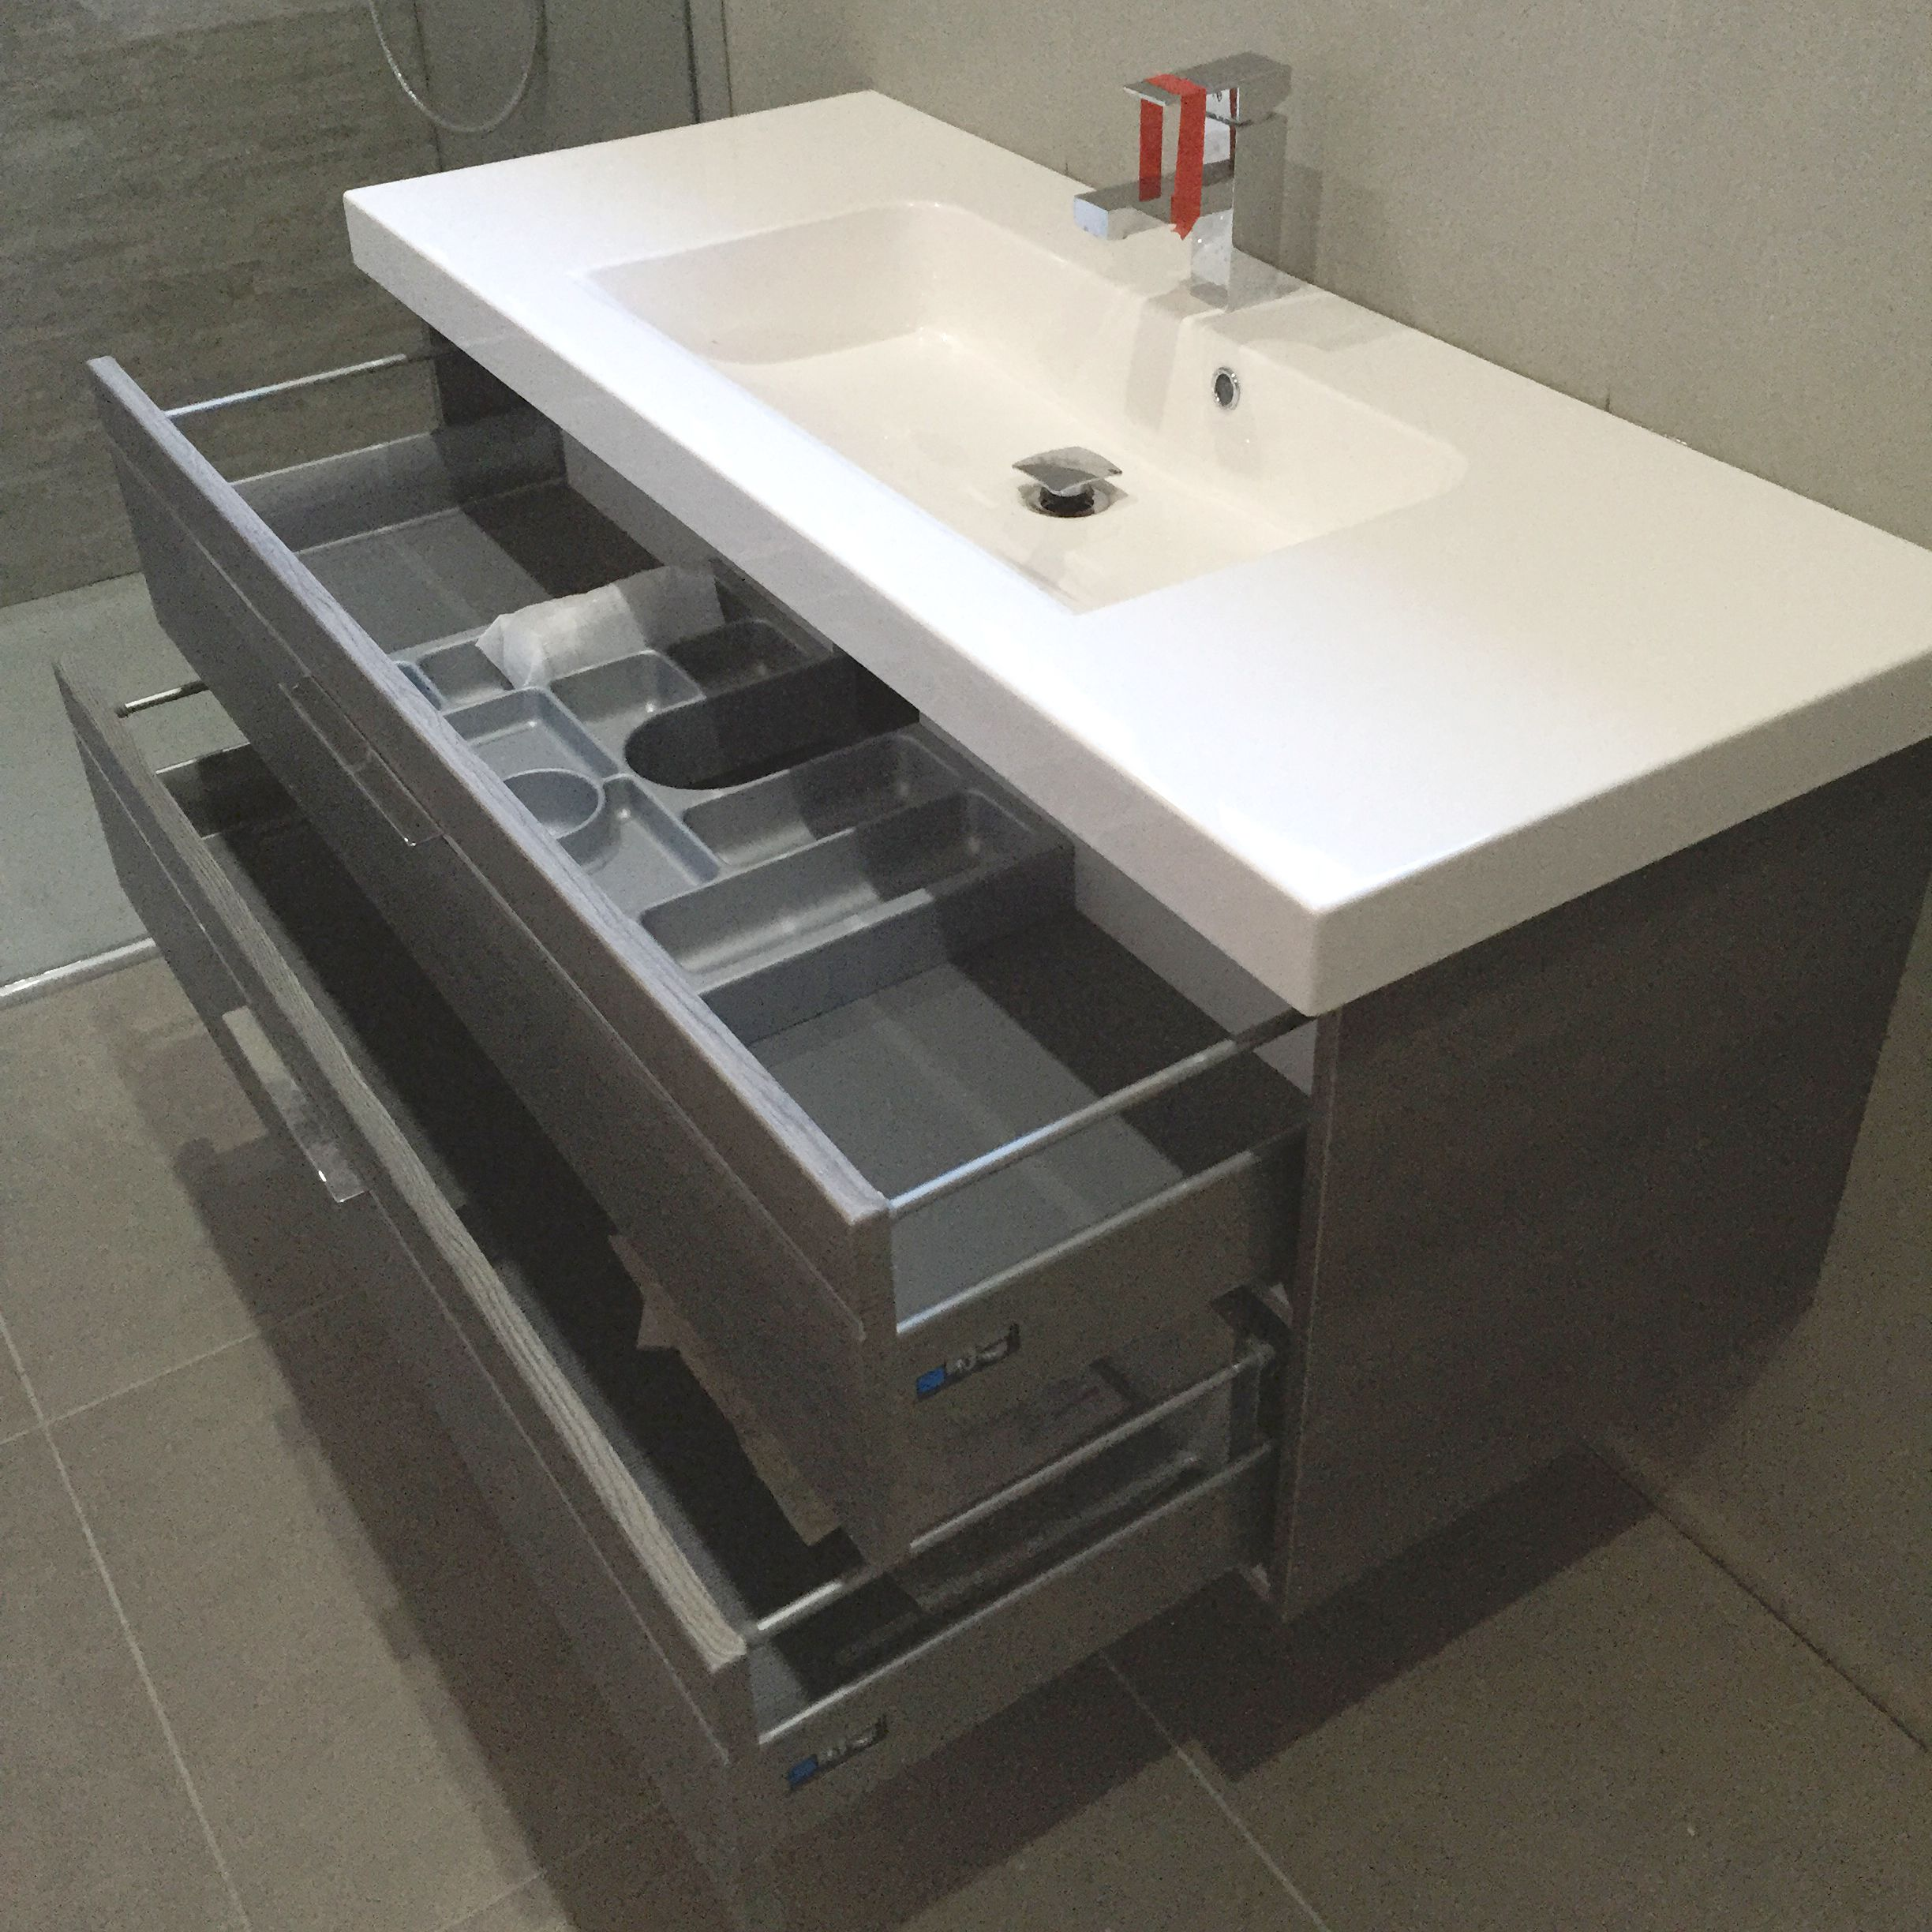 Bathroom sink and vanity unit - Pelipal Basin Vanity Unit With Internal Storage